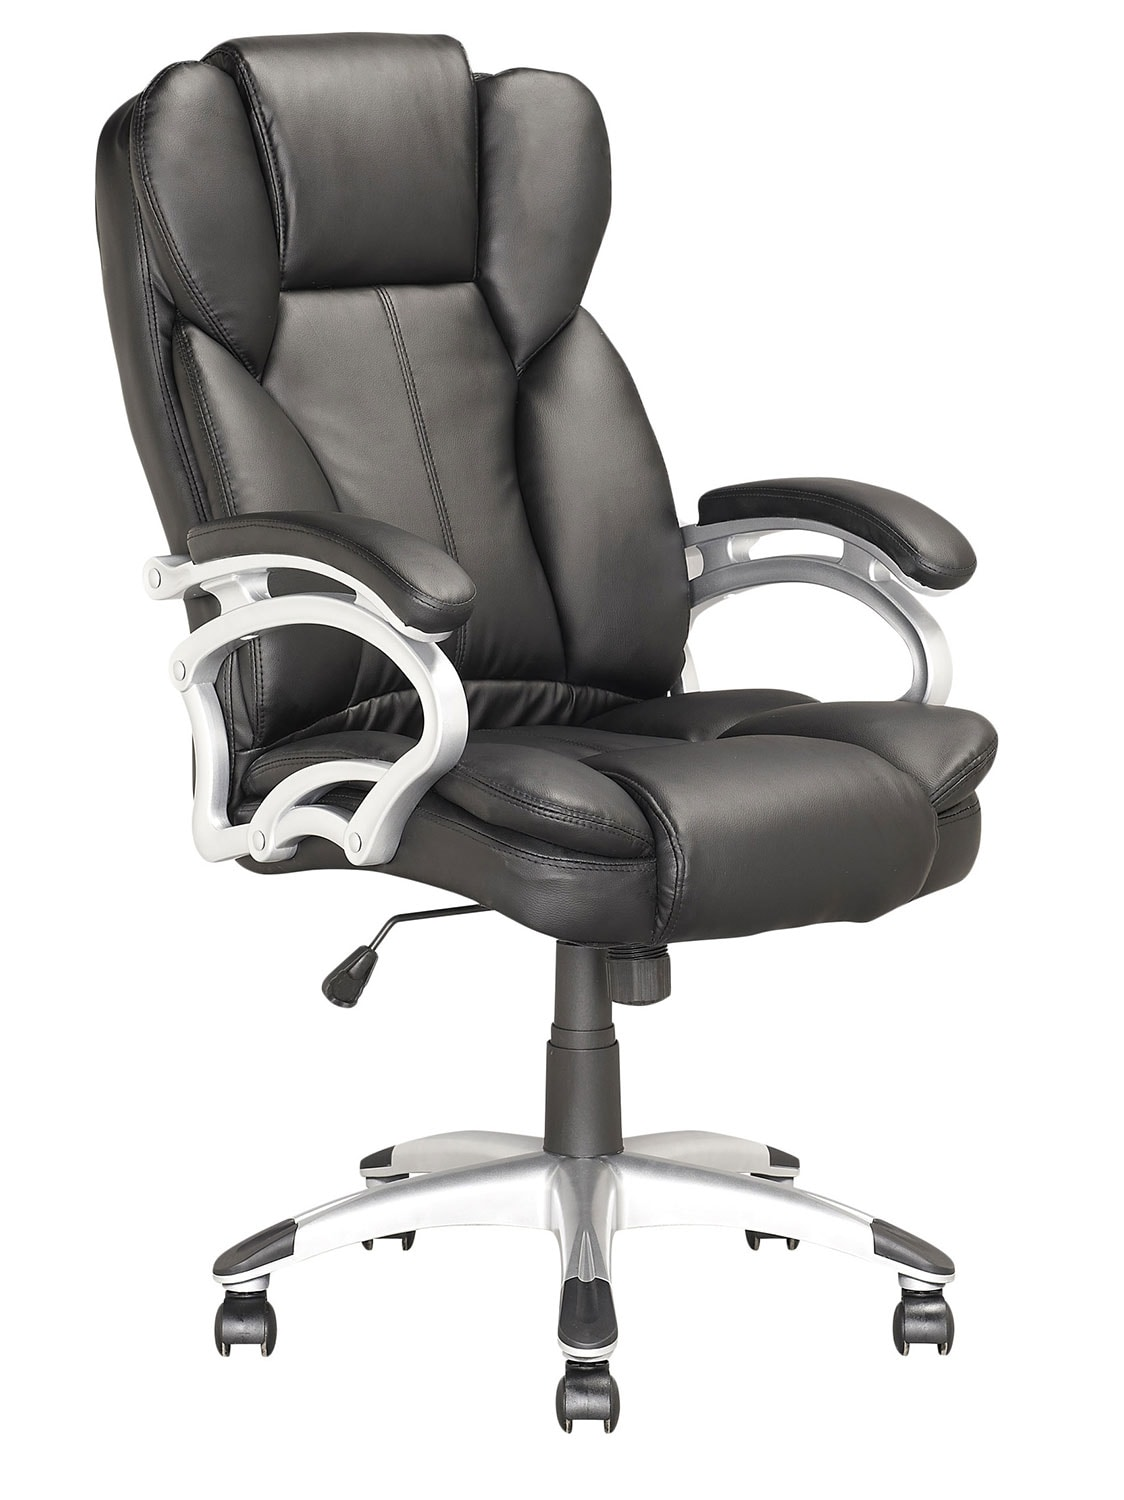 Miami Foam-Padded Leatherette Executive Office Chair